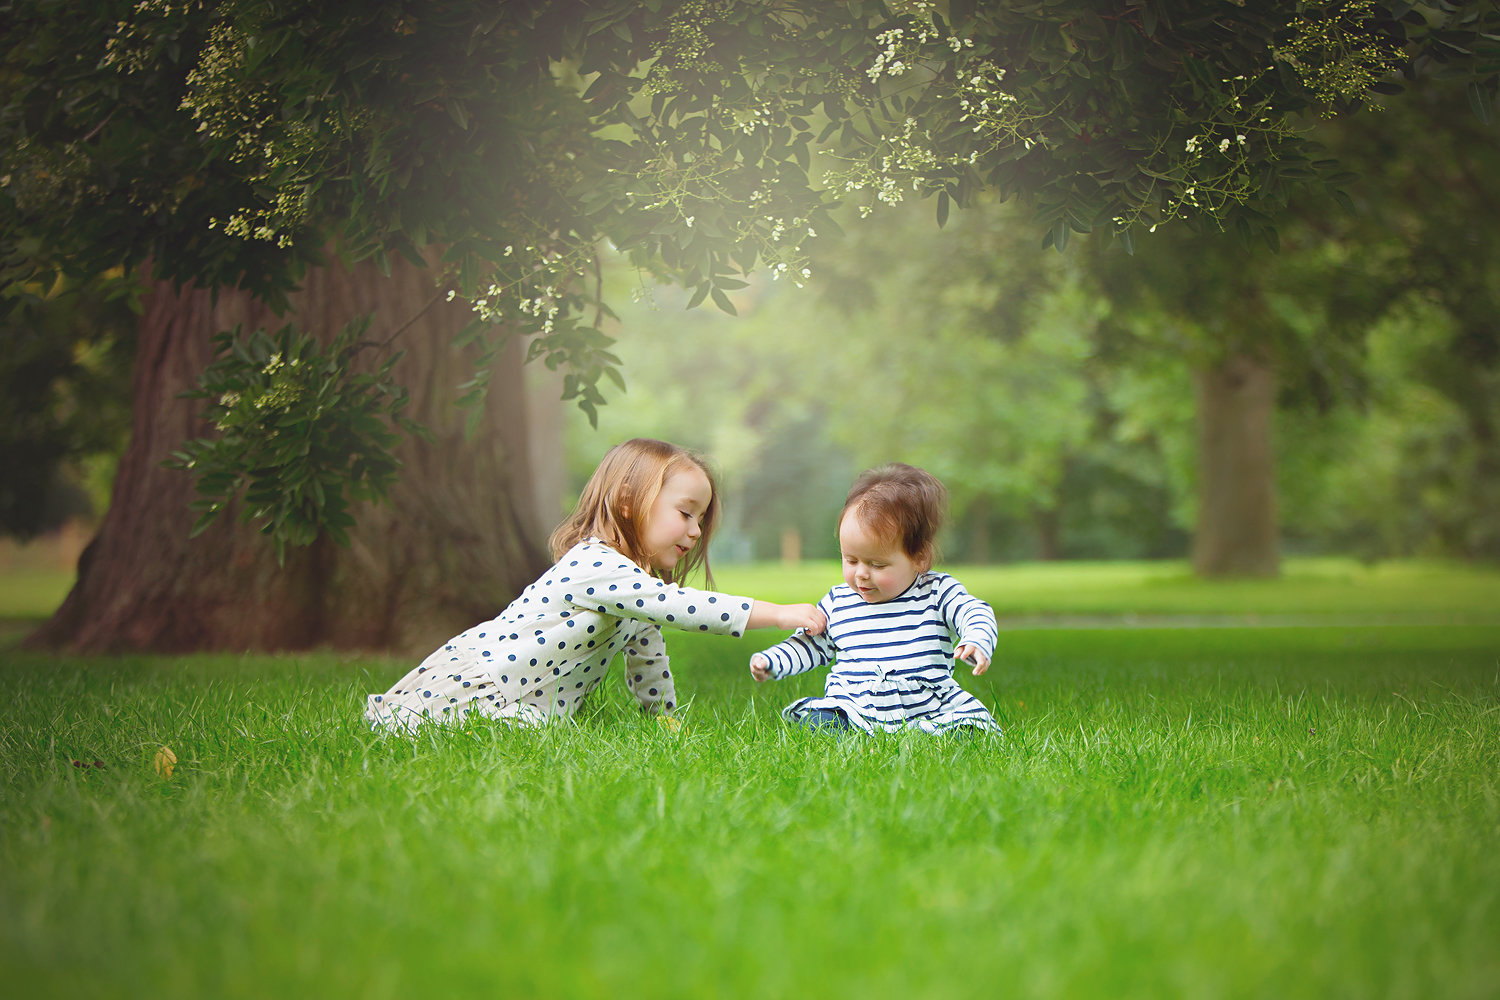 sisters playing on the grass under a tree